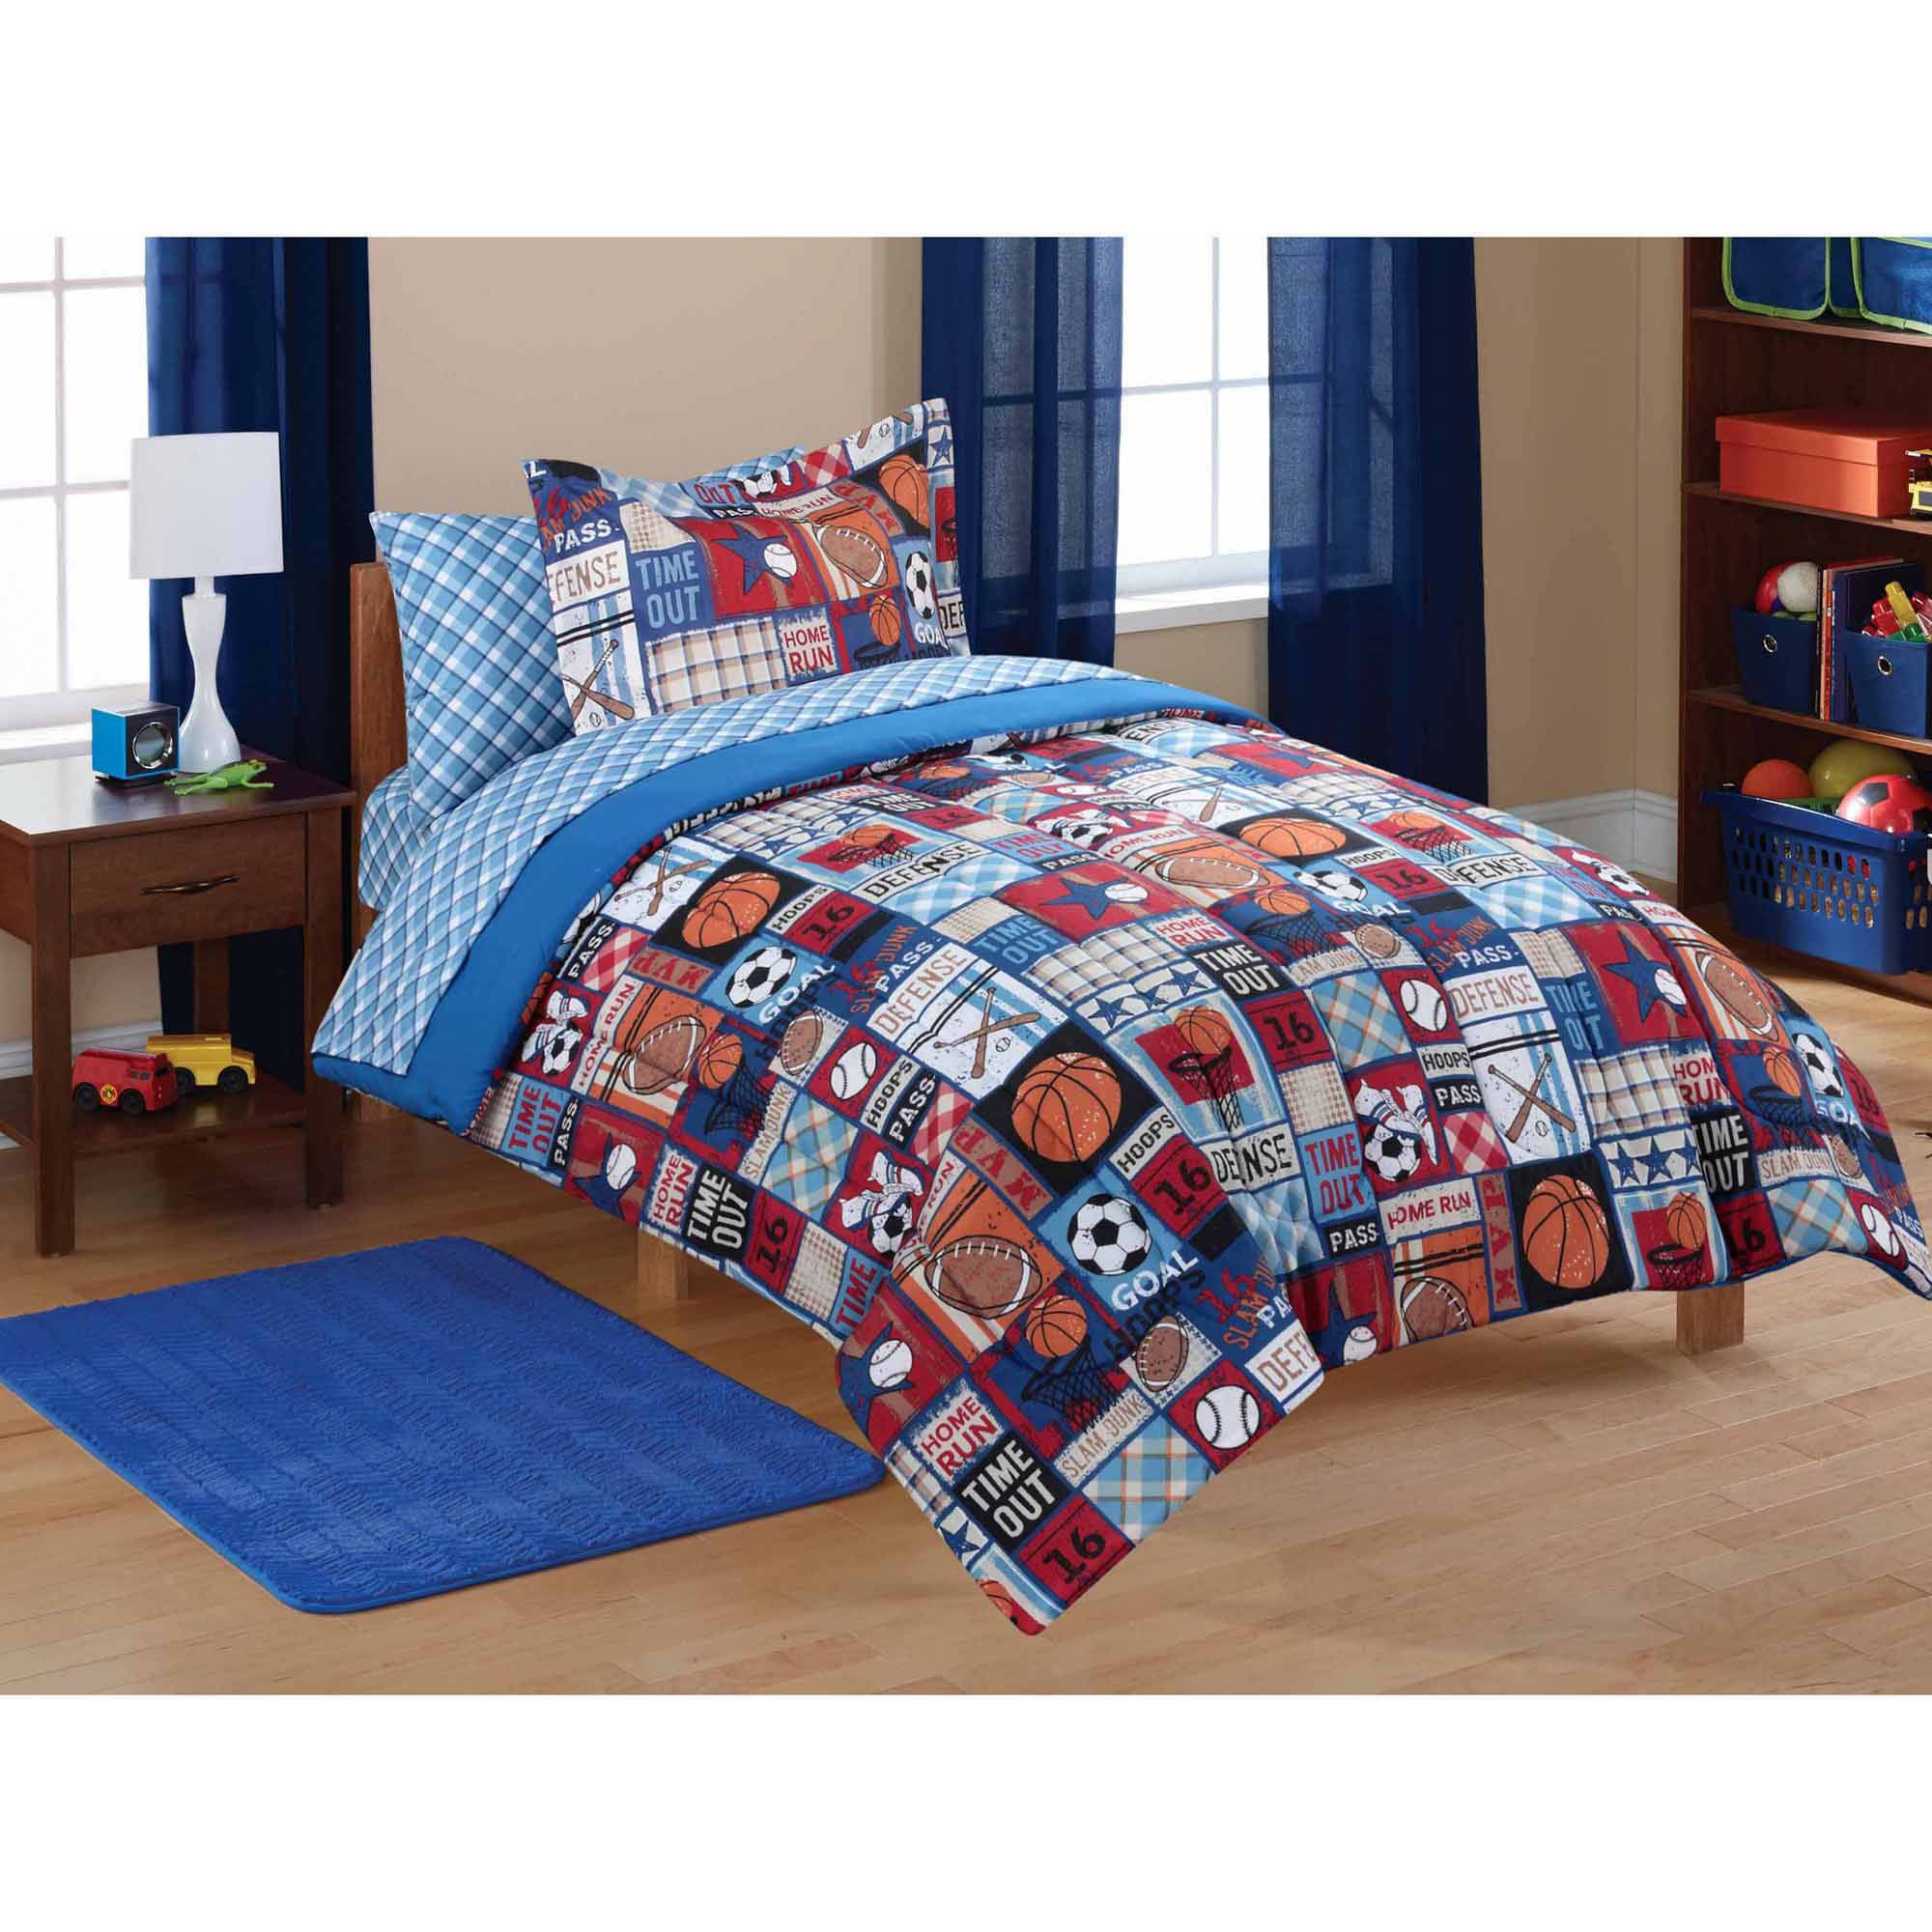 Mainstays kids sports patch coordinated bed in a bag deal